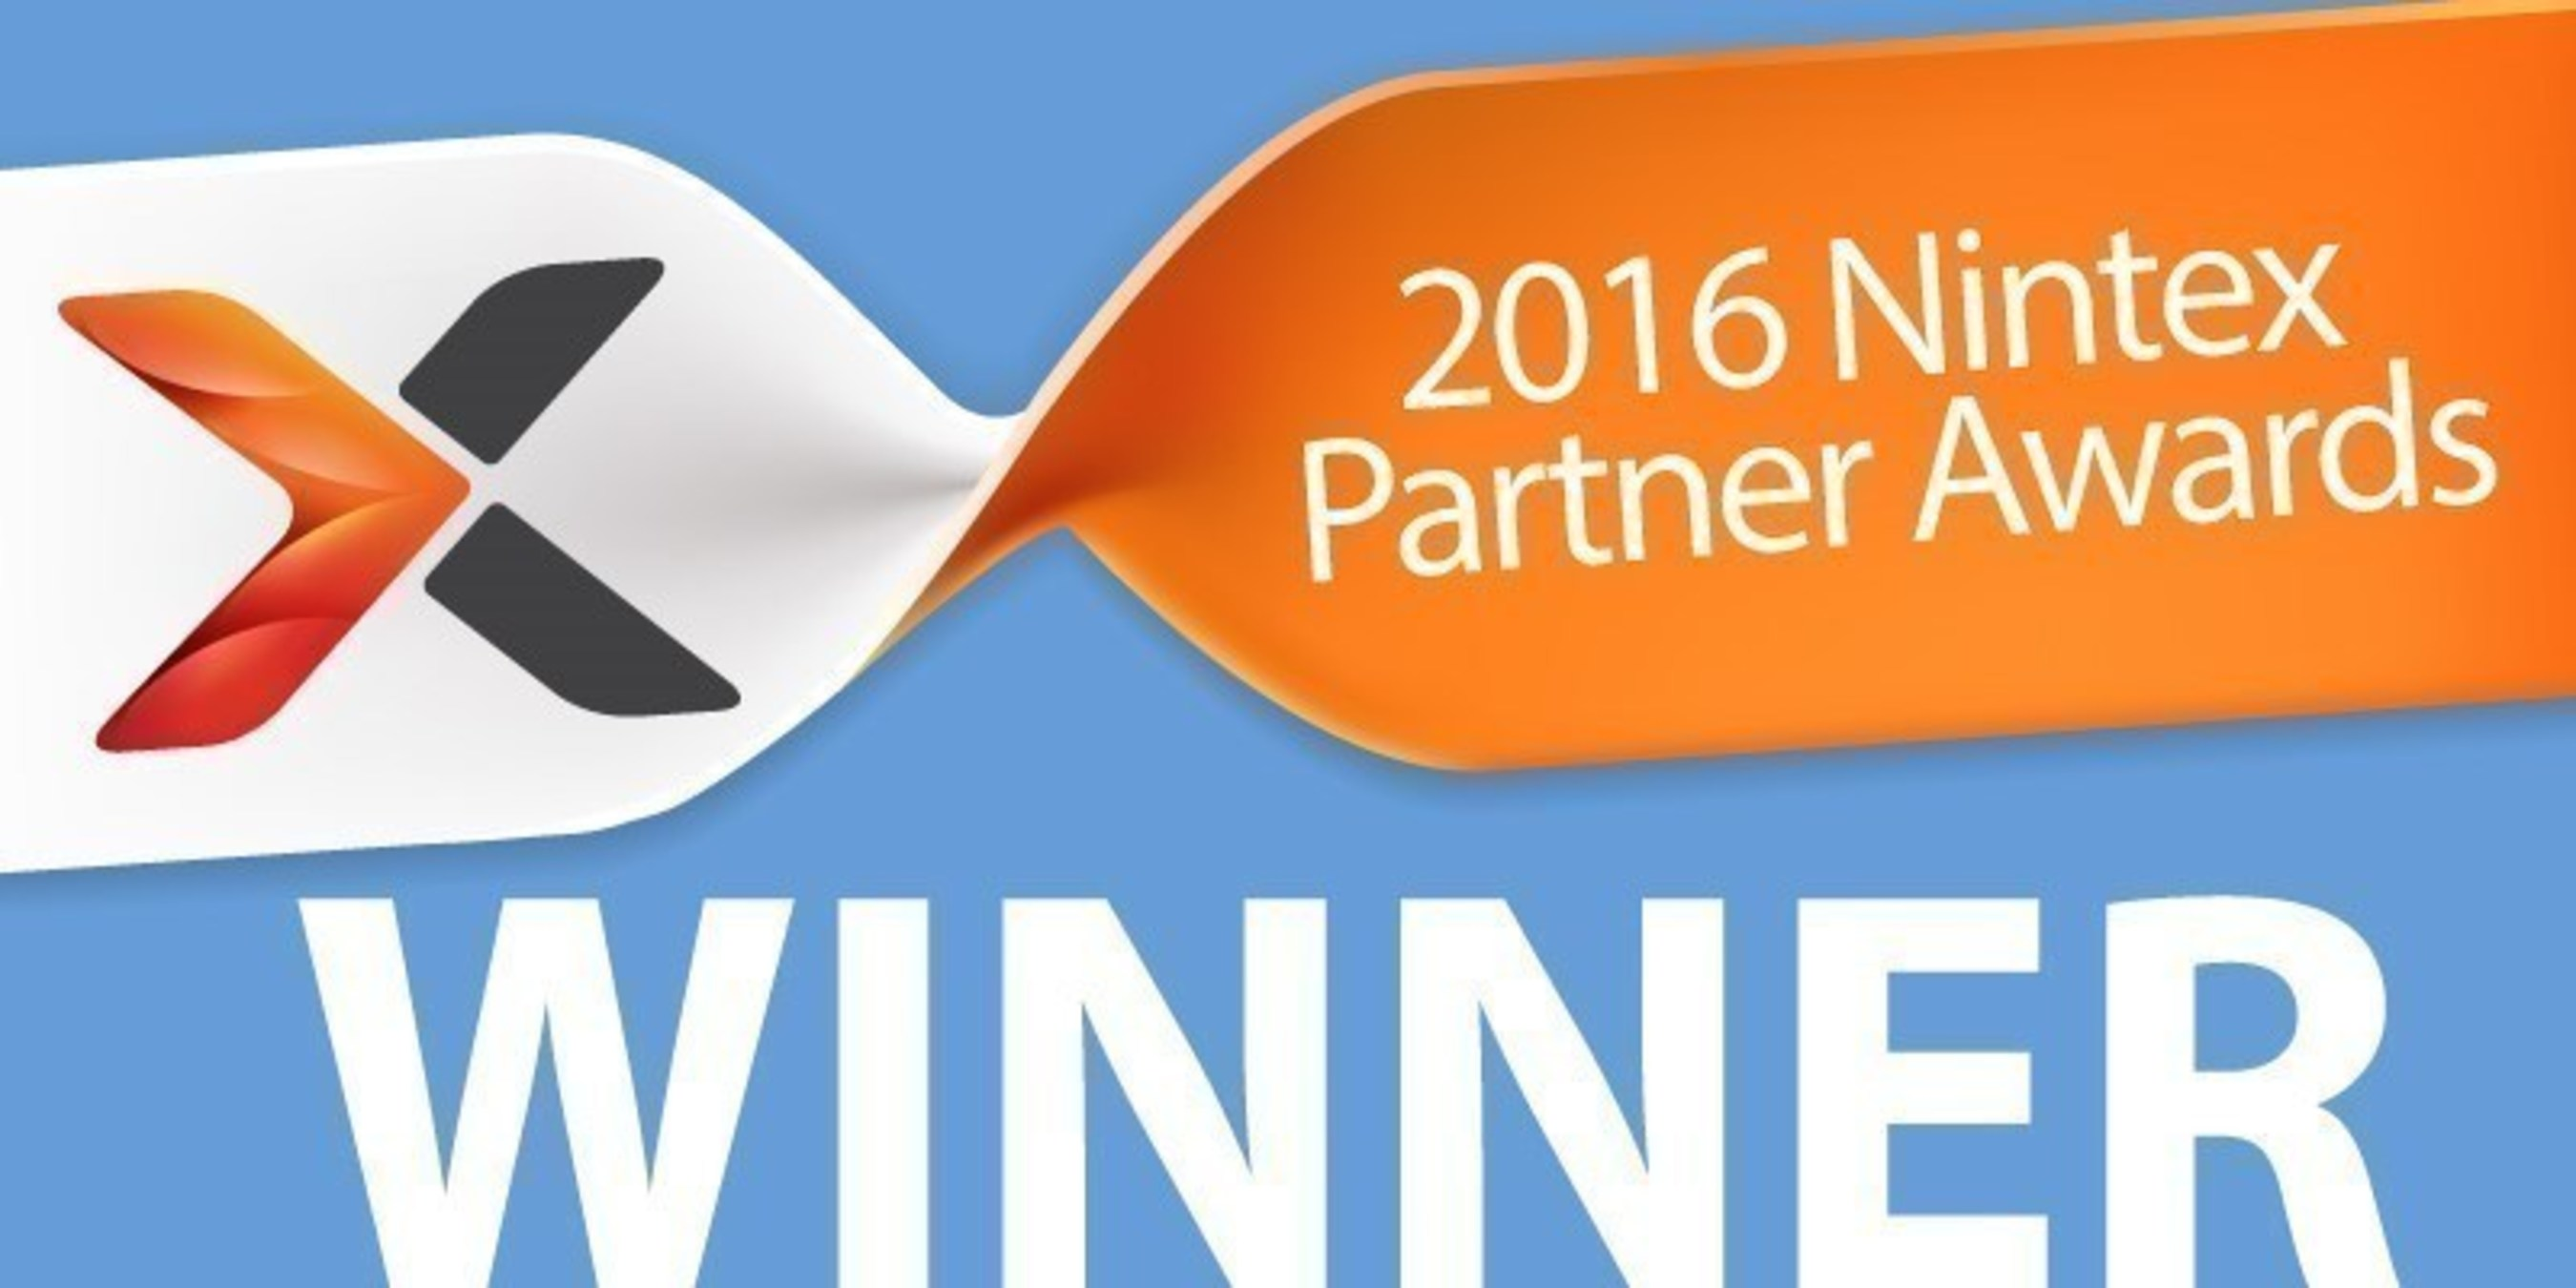 """In its fifth year, the Nintex Partner Awards recognize the valuable contributions channel partners--resellers, value added resellers (VARs), system integrators (SIs), independent software vendors (ISVs)--have made in helping organizations of all sizes, in every industry, automate workflows and the generation of documents to improve how business gets done. To learn more about successful Nintex partners, download the new e-book """"Partner with Nintex: The path to profitability"""" at http://www.nintex.com/Partner-e-Book. (PRNewsFoto/Nintex)"""